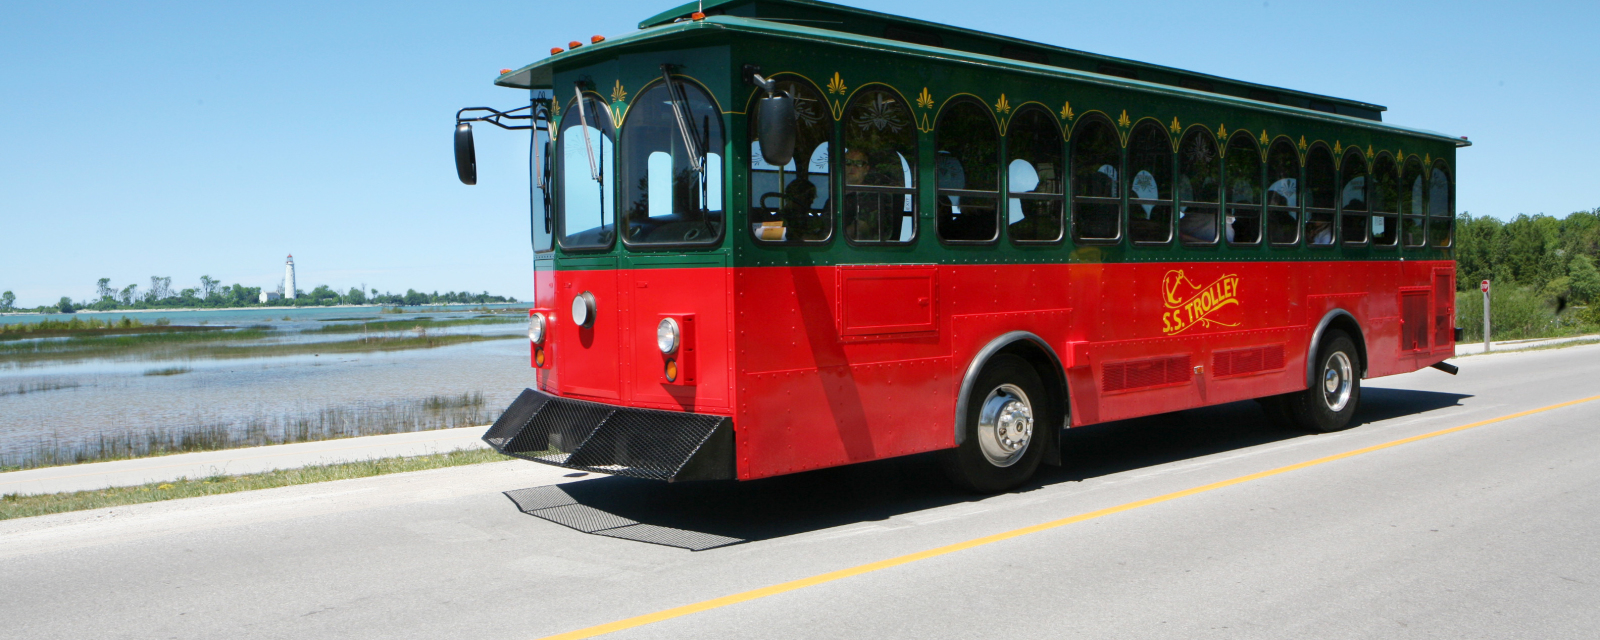 SS_Trolley Port Elgin Ontario